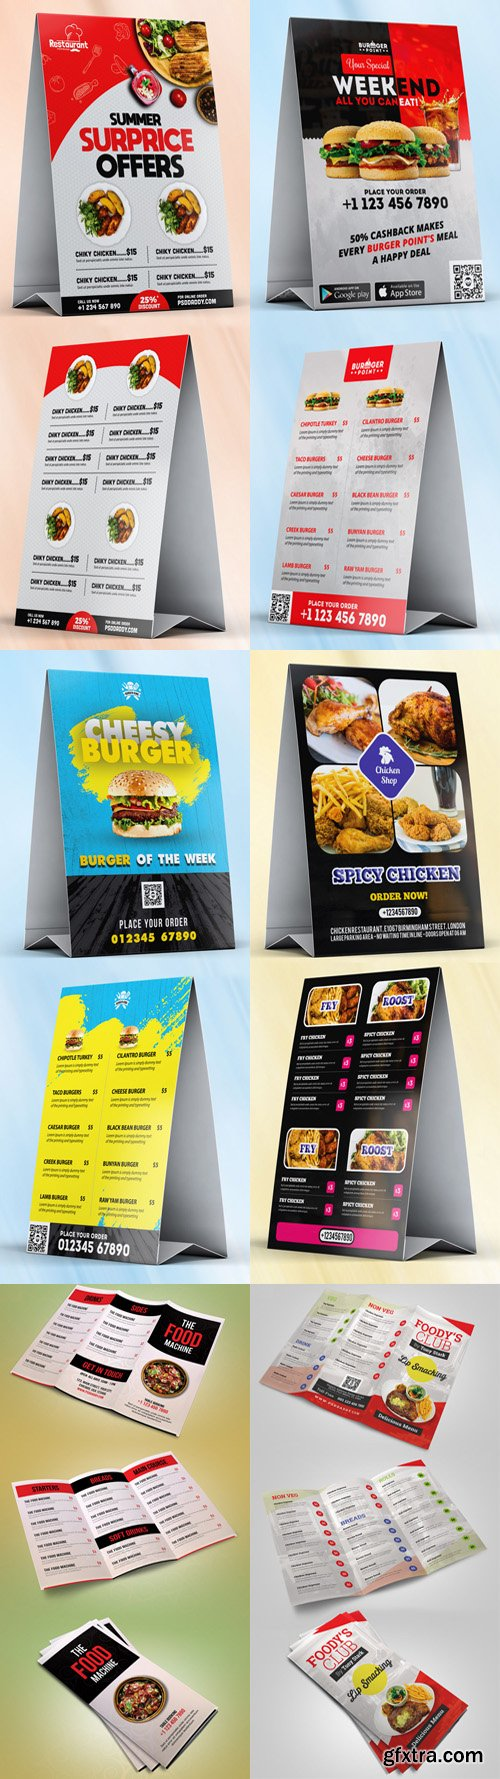 6 Restaurant Food Menu PSD Template Collection